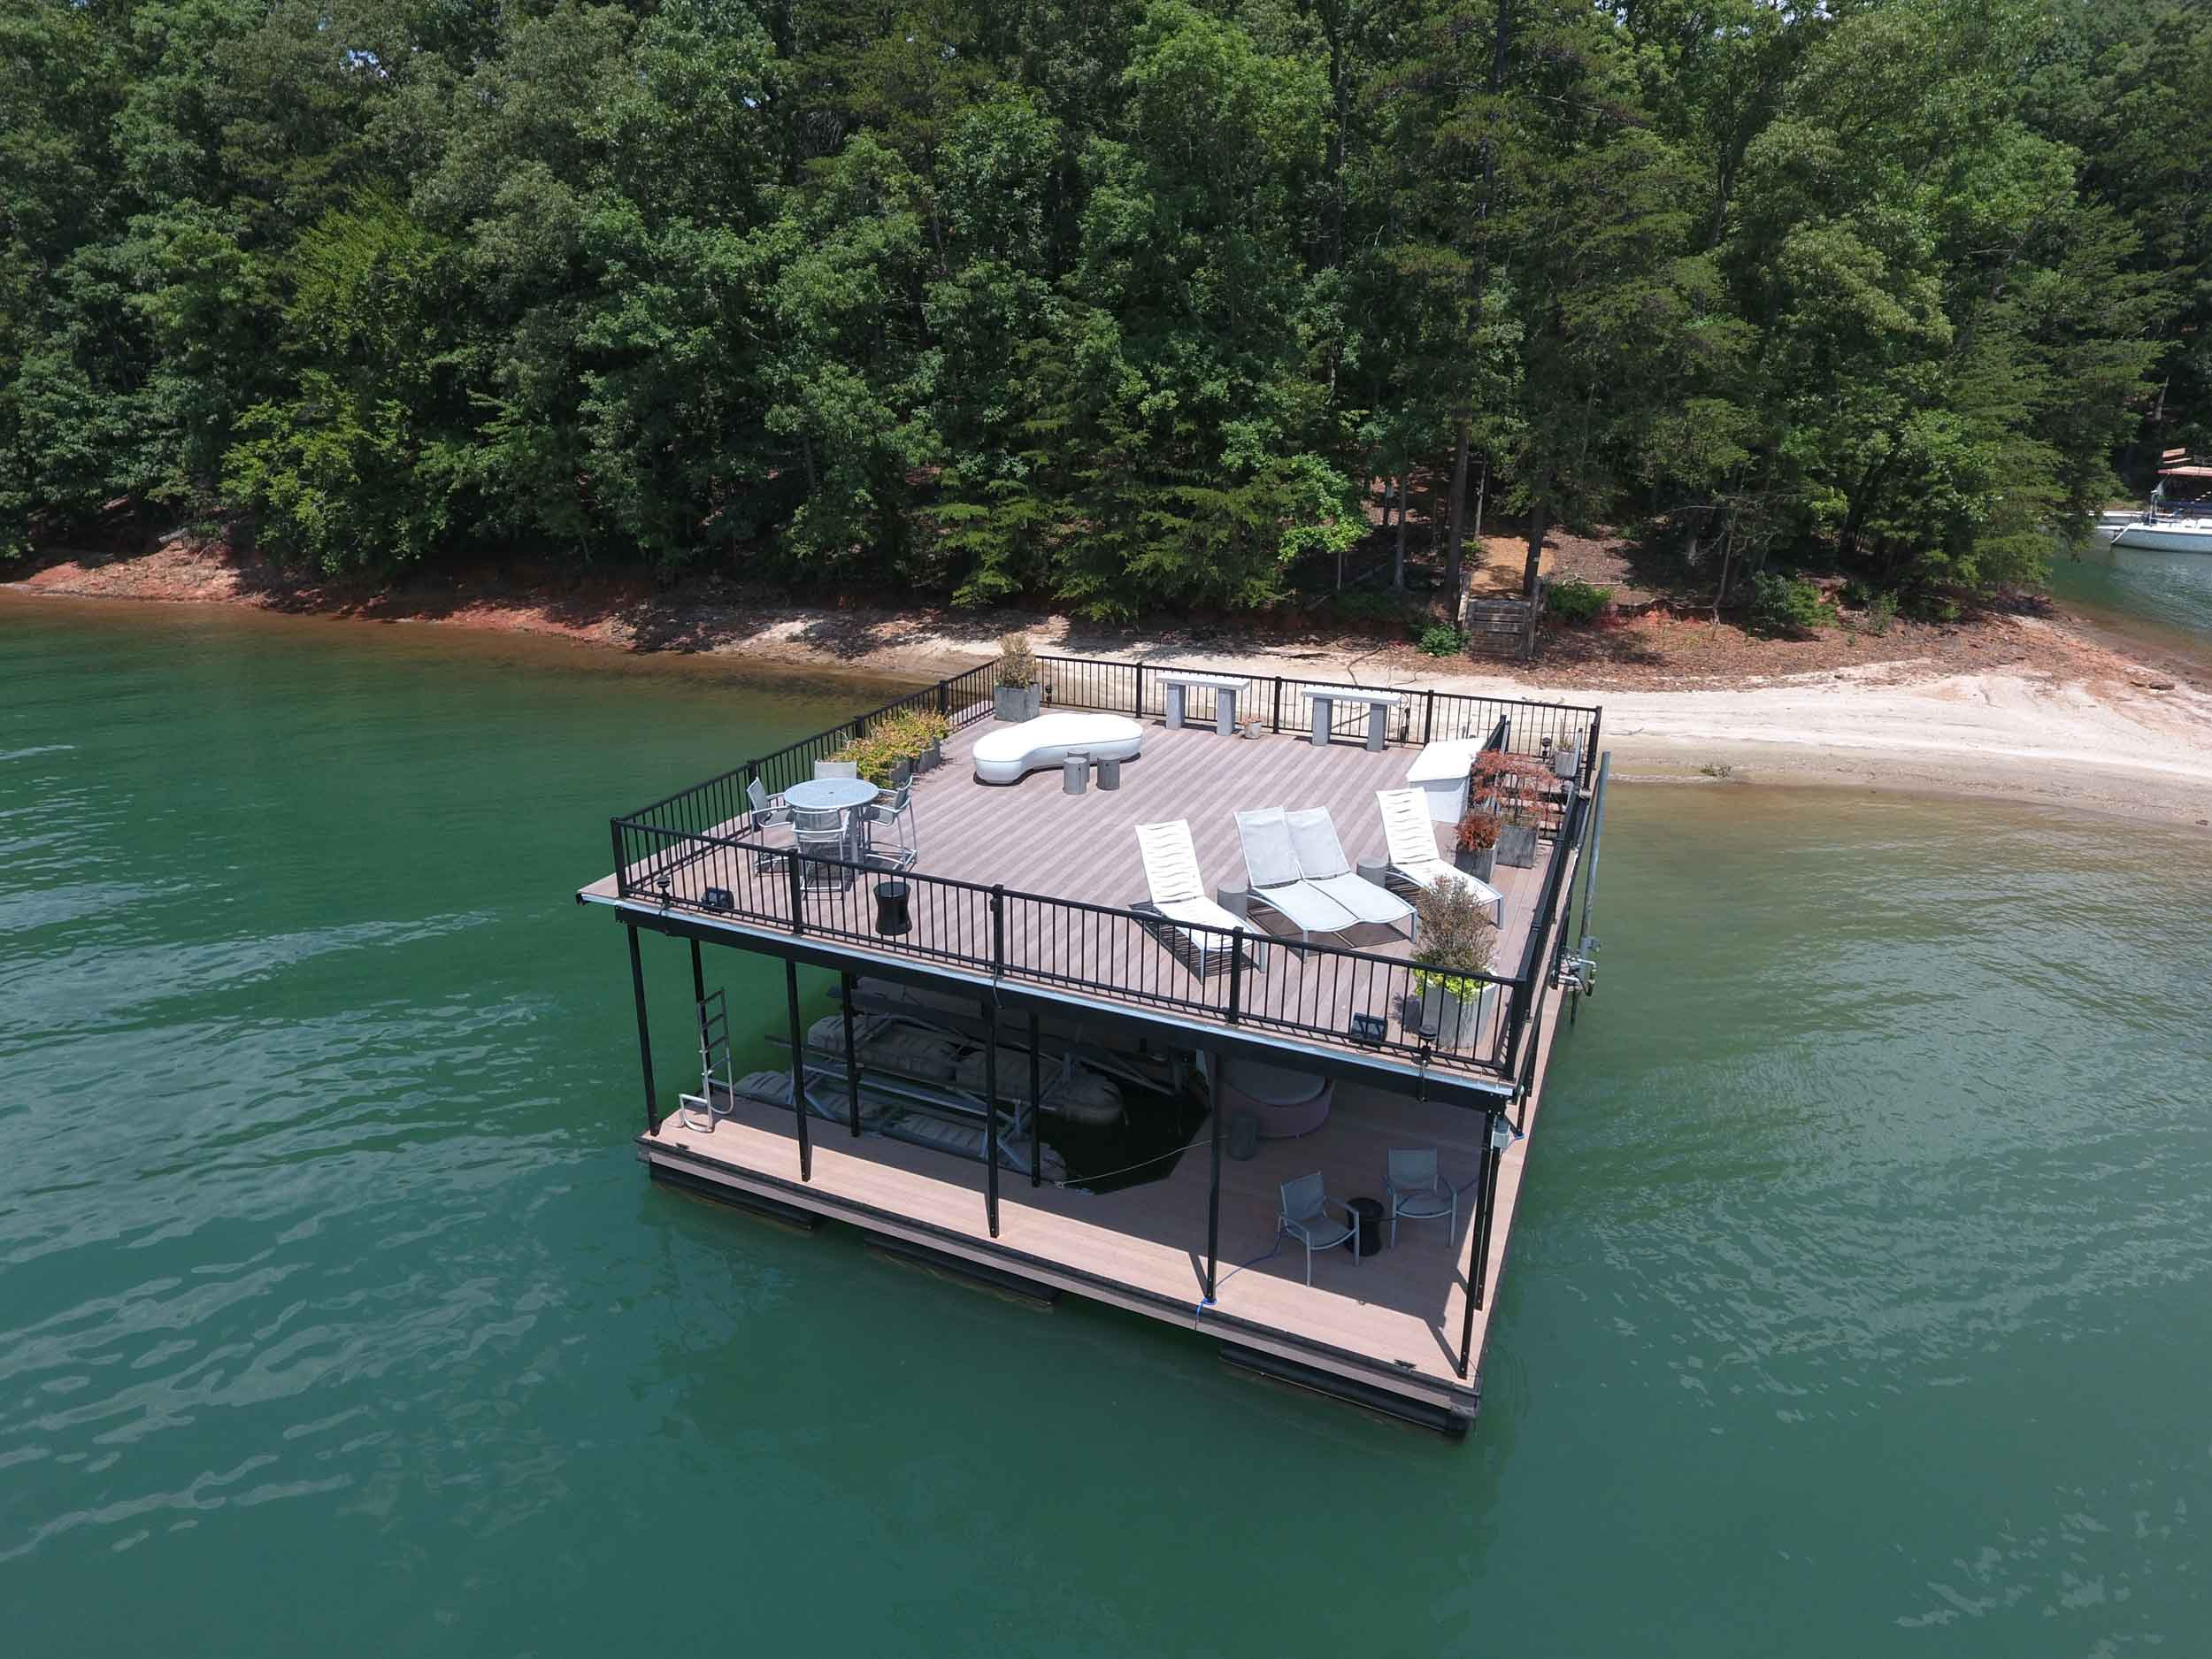 This waterfront estate on Lake Lanier has a stellar lineup of amenities, but its deepwater boat dock with upstairs entertainment deck steals the show.